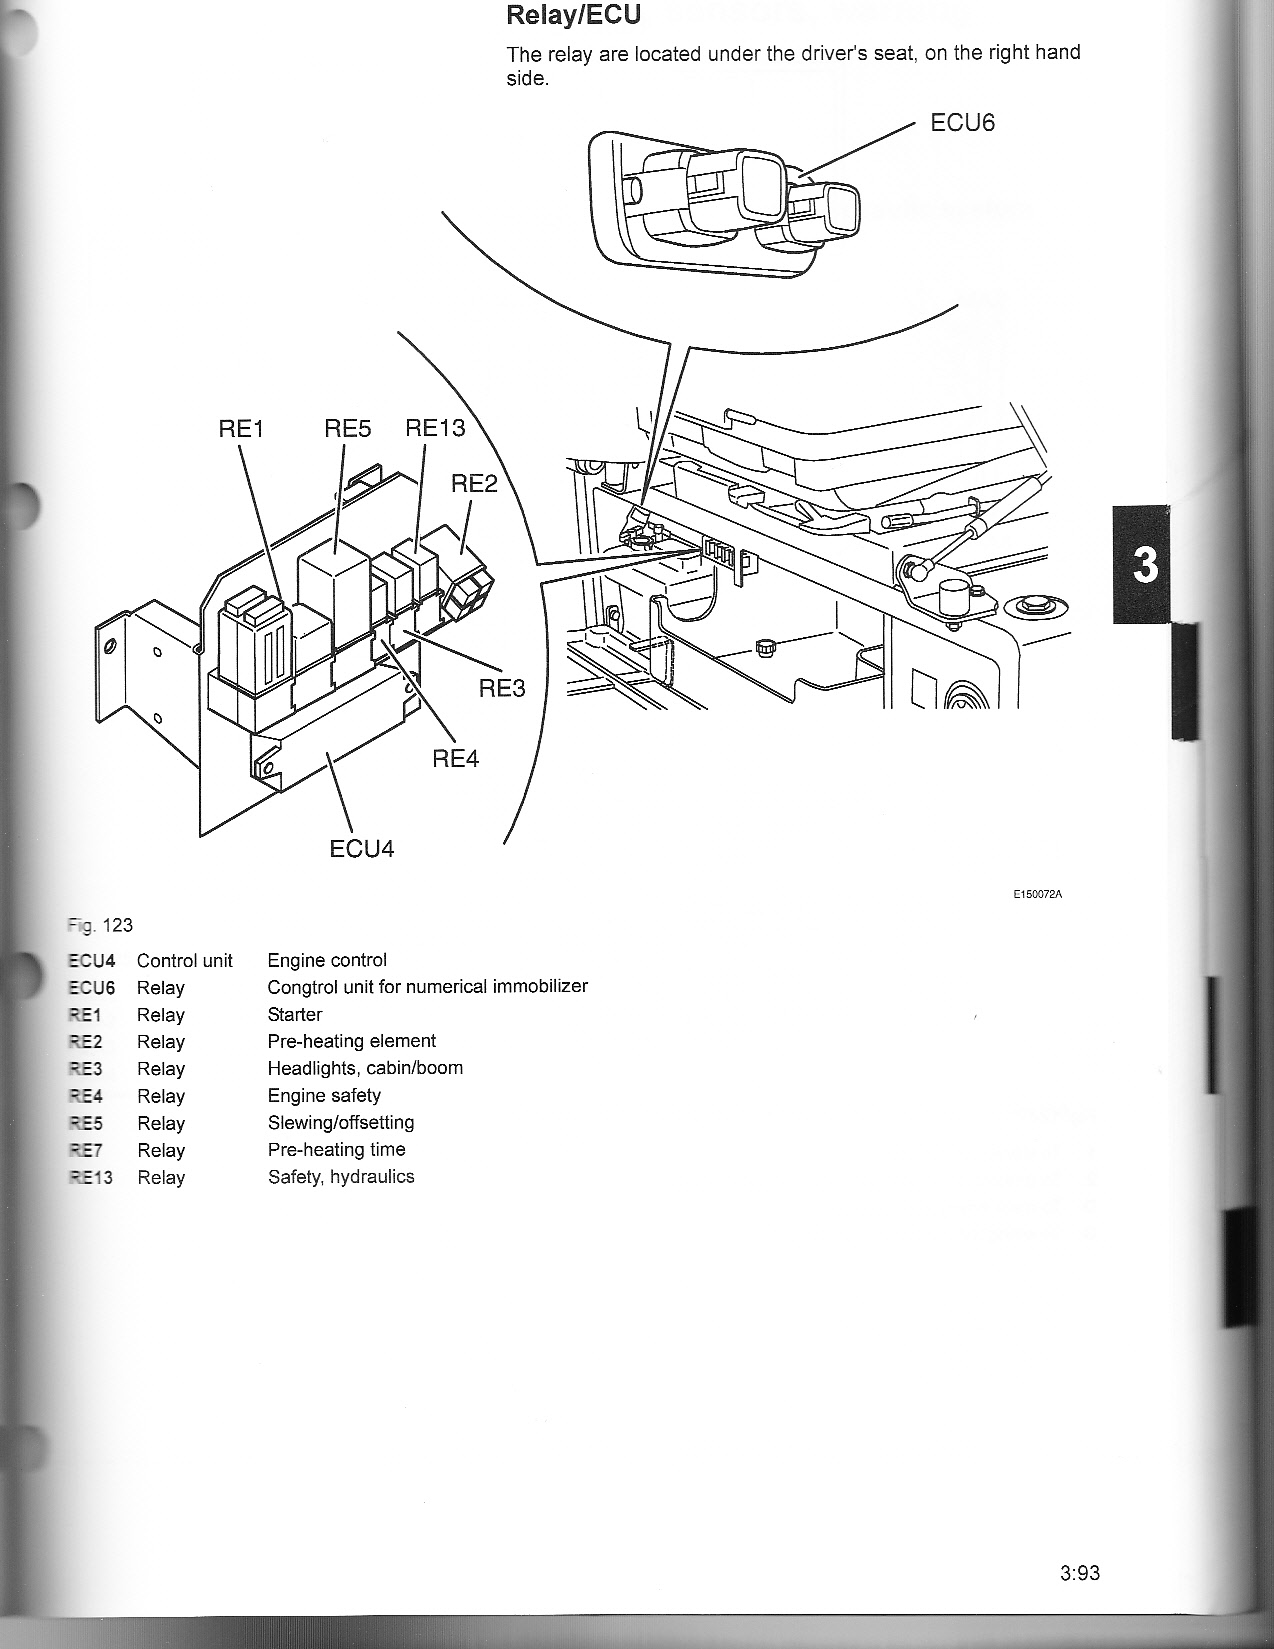 Takeuchi tl150 wiring diagram cg 125 engine diagram diagram of Yanmar Wiring Schematic Alternator Wiring Diagram Electrical Wiring Diagrams on takeuchi wiring schematic